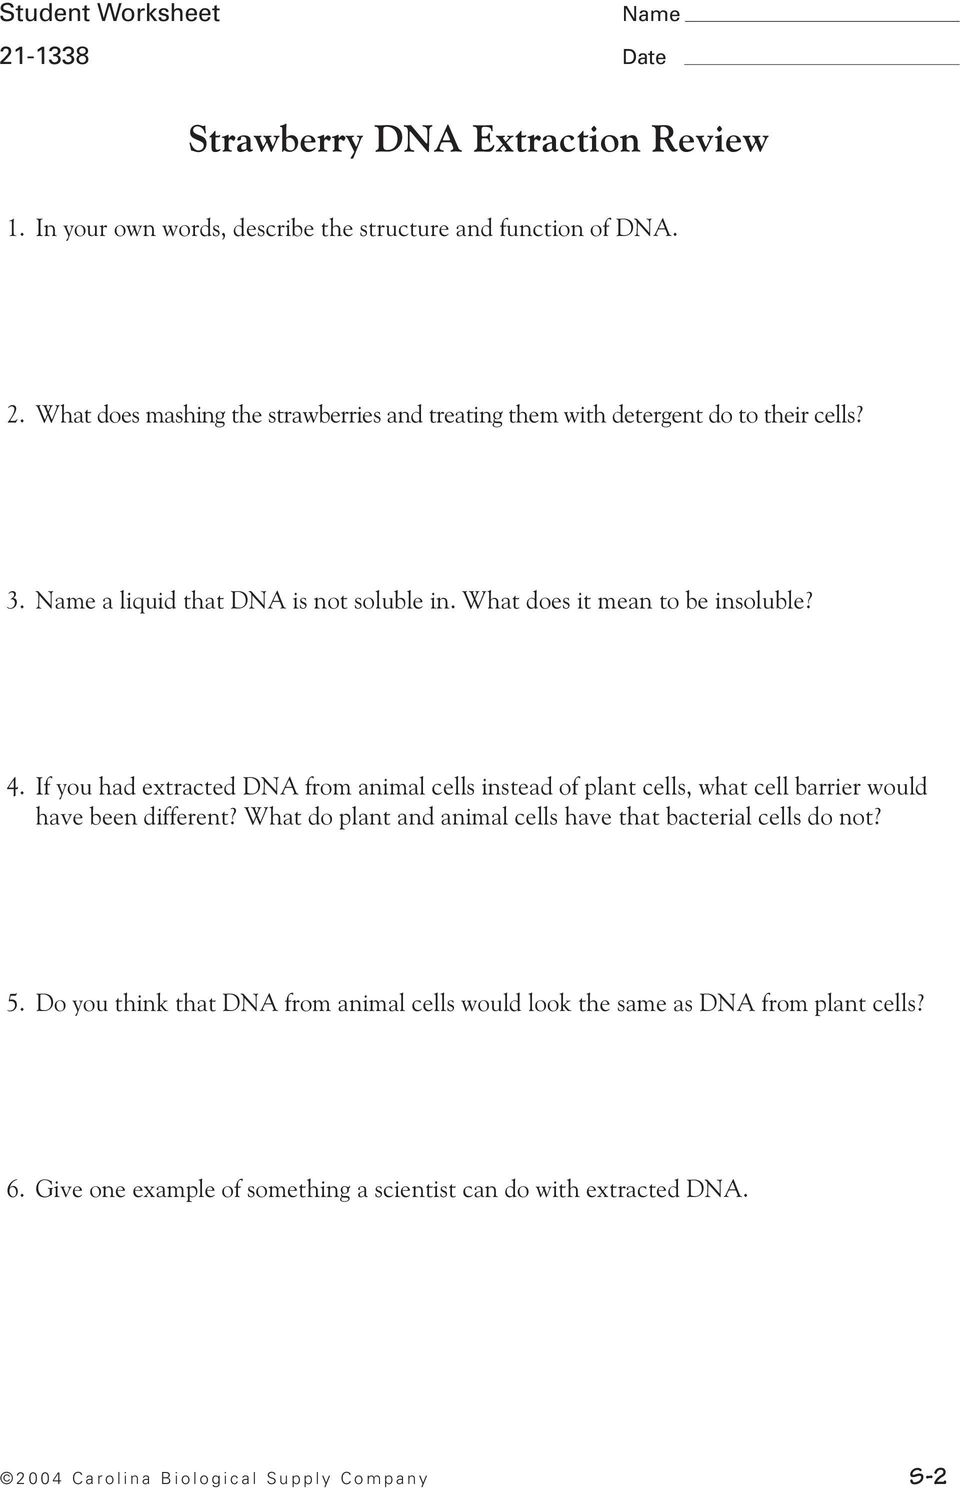 Strawberry Dna Extraction Pdf Free Download